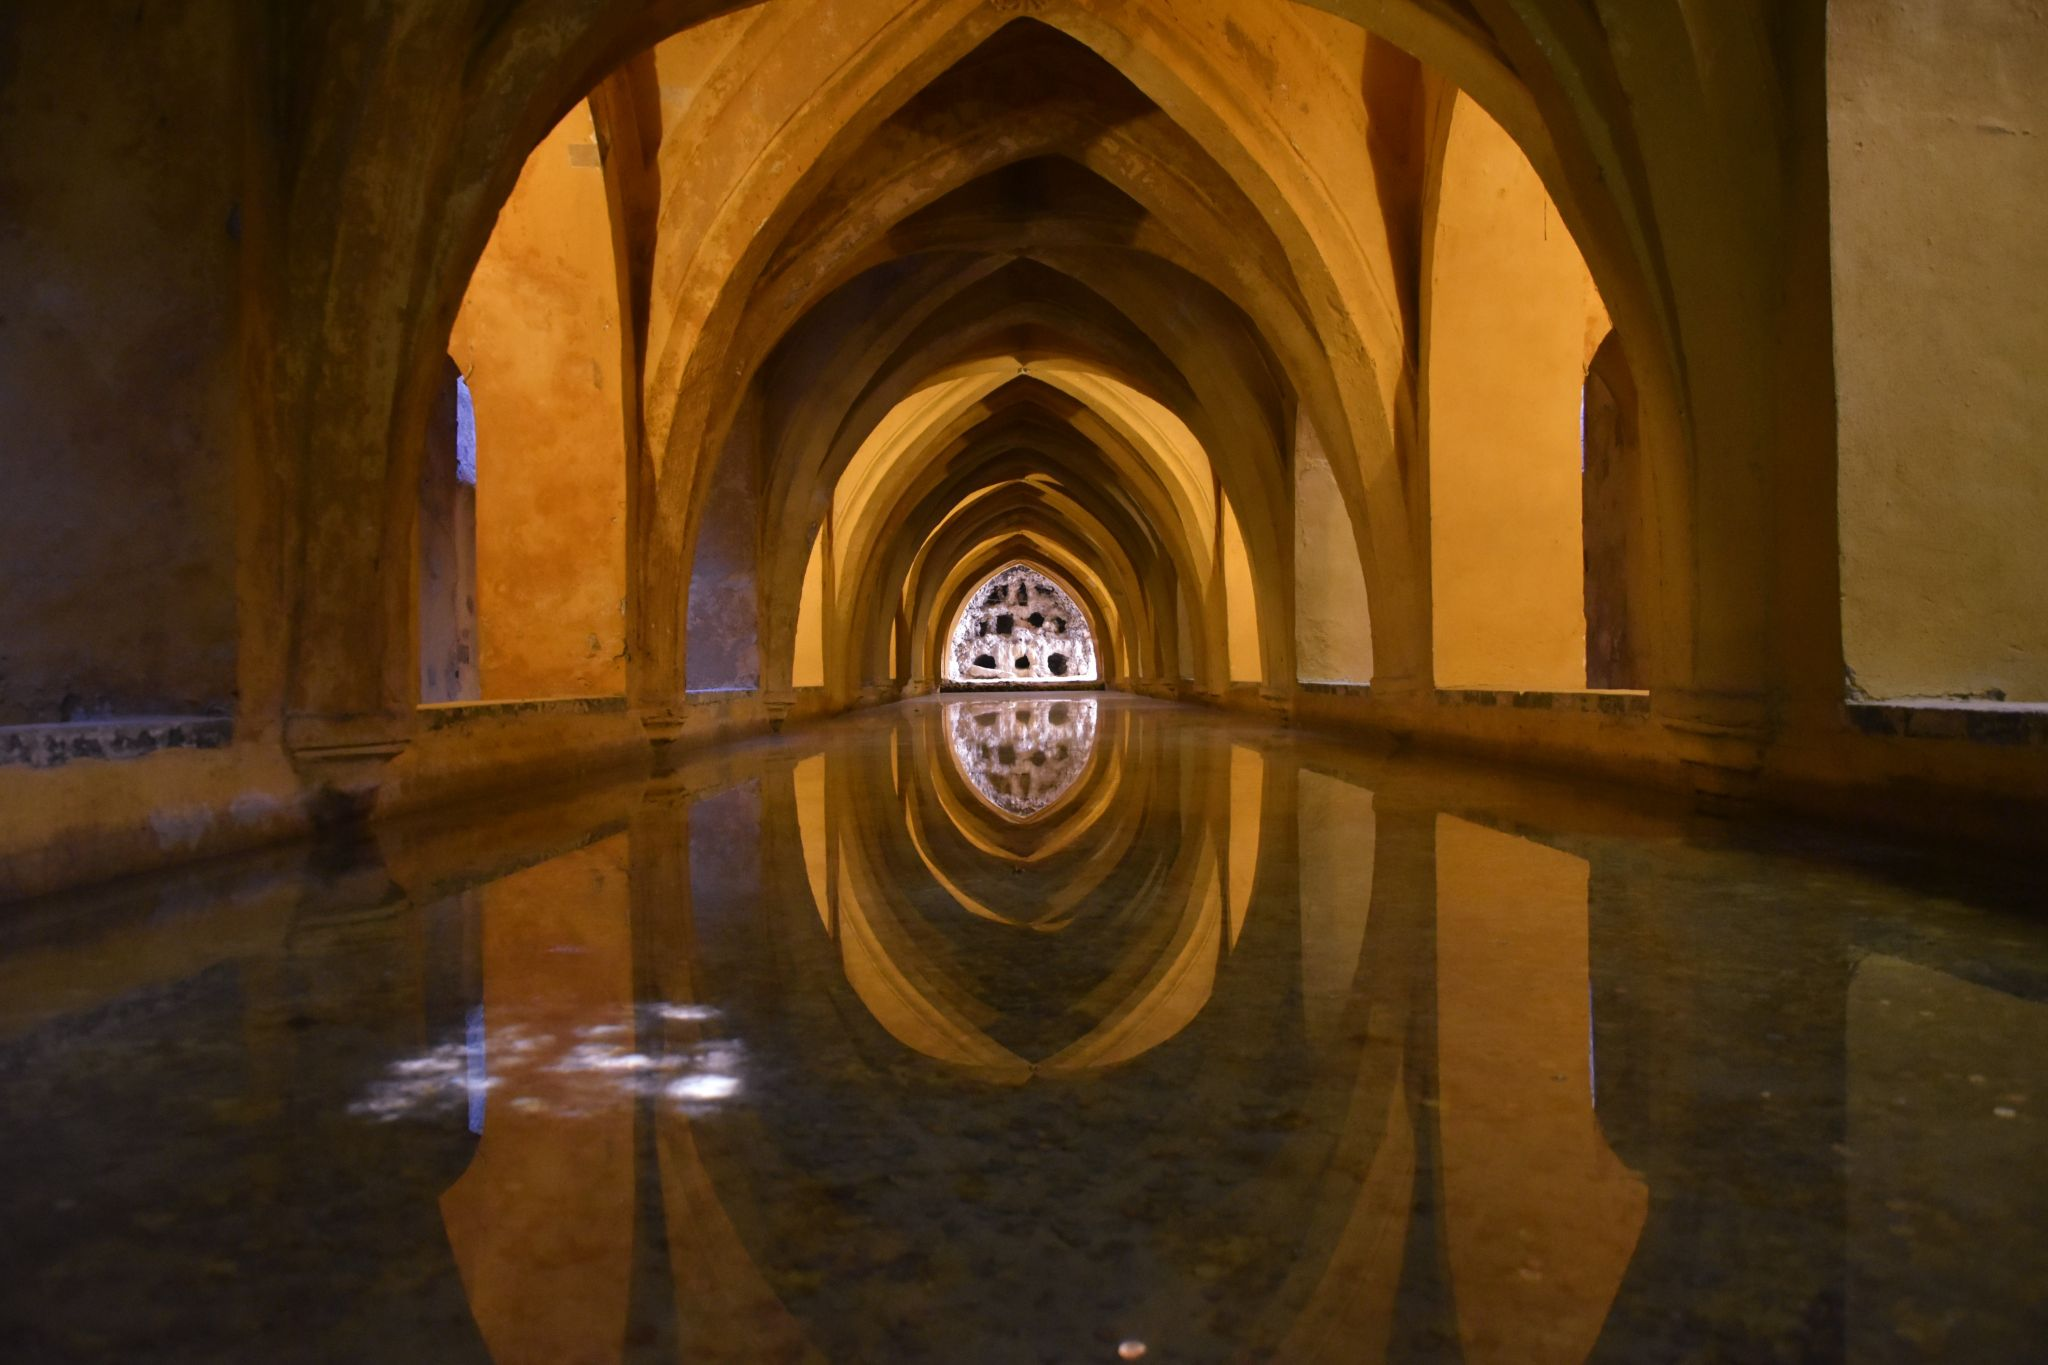 Seville  Top 32 spots for photography